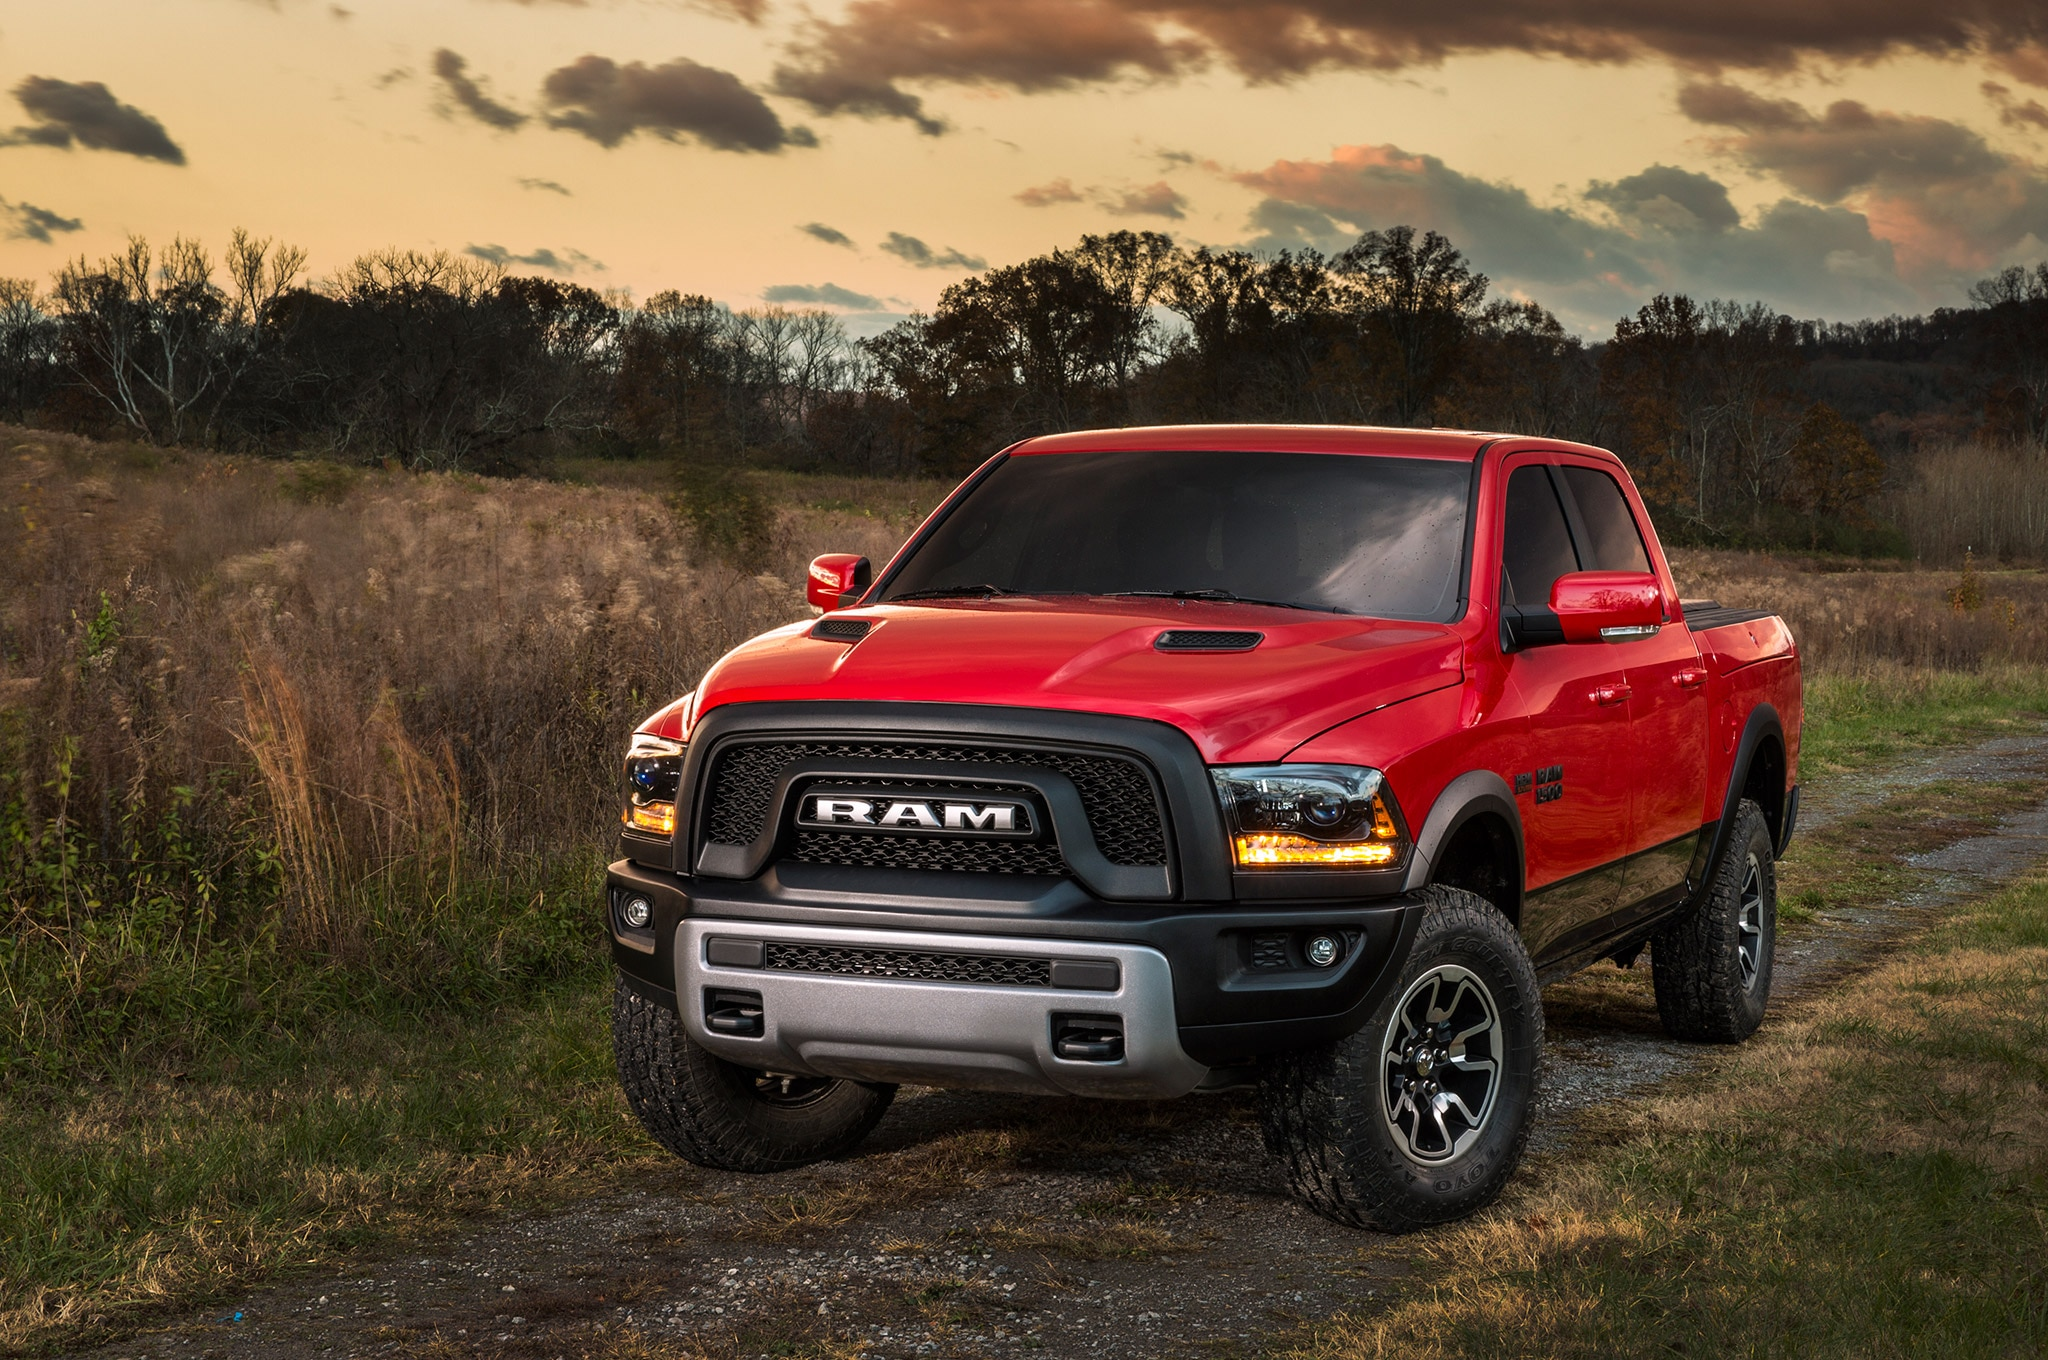 Ram Ecodiesel For Sale >> 2015 Ram 1500 Rebel Off-Road Trim Debuts in Detroit